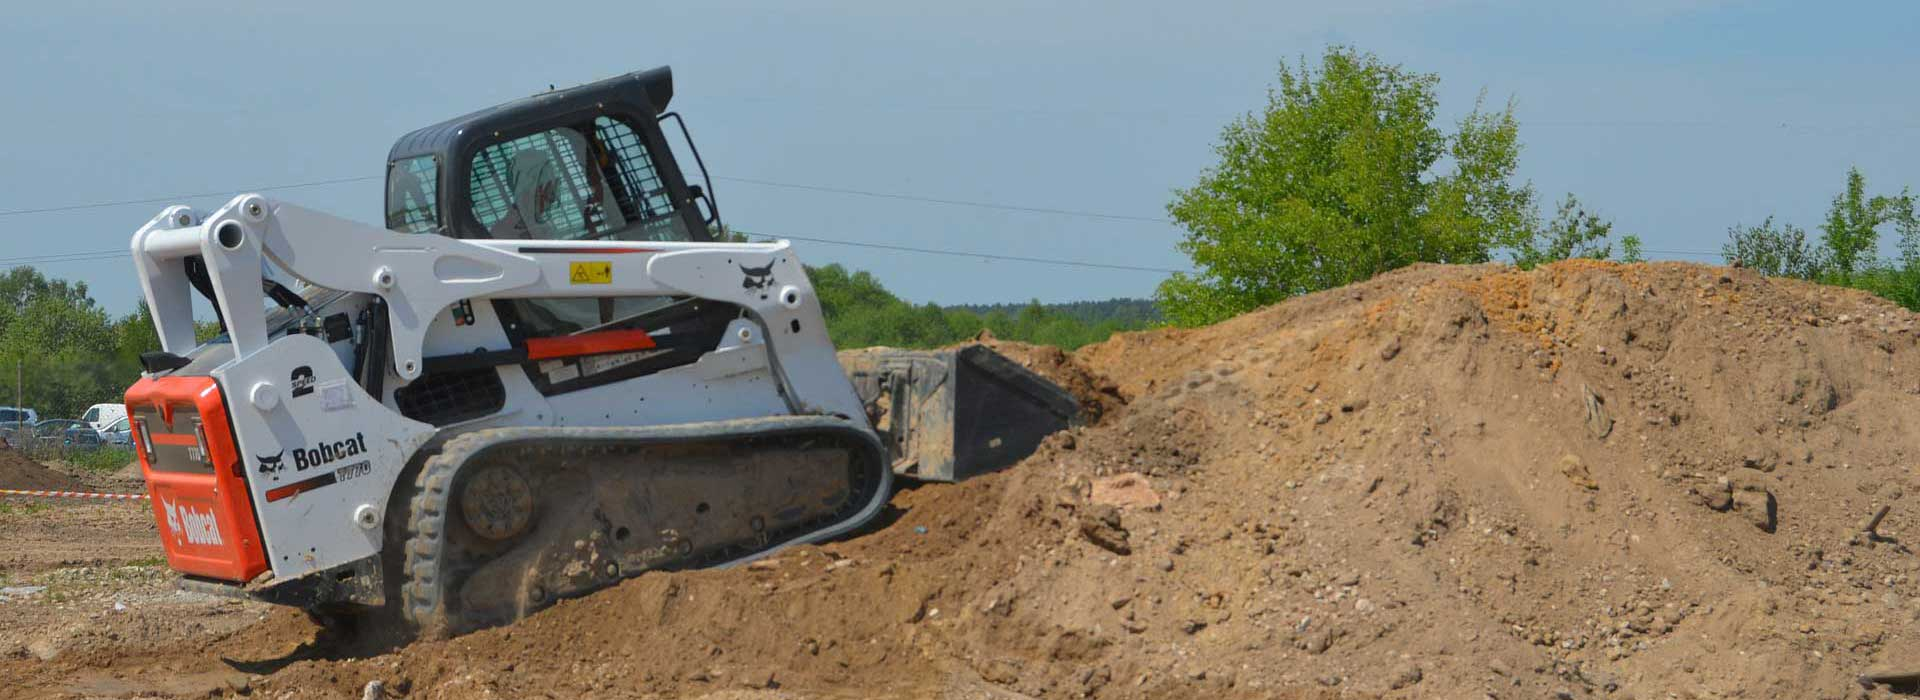 Rent Heavy Equipment in Westmont Illinois